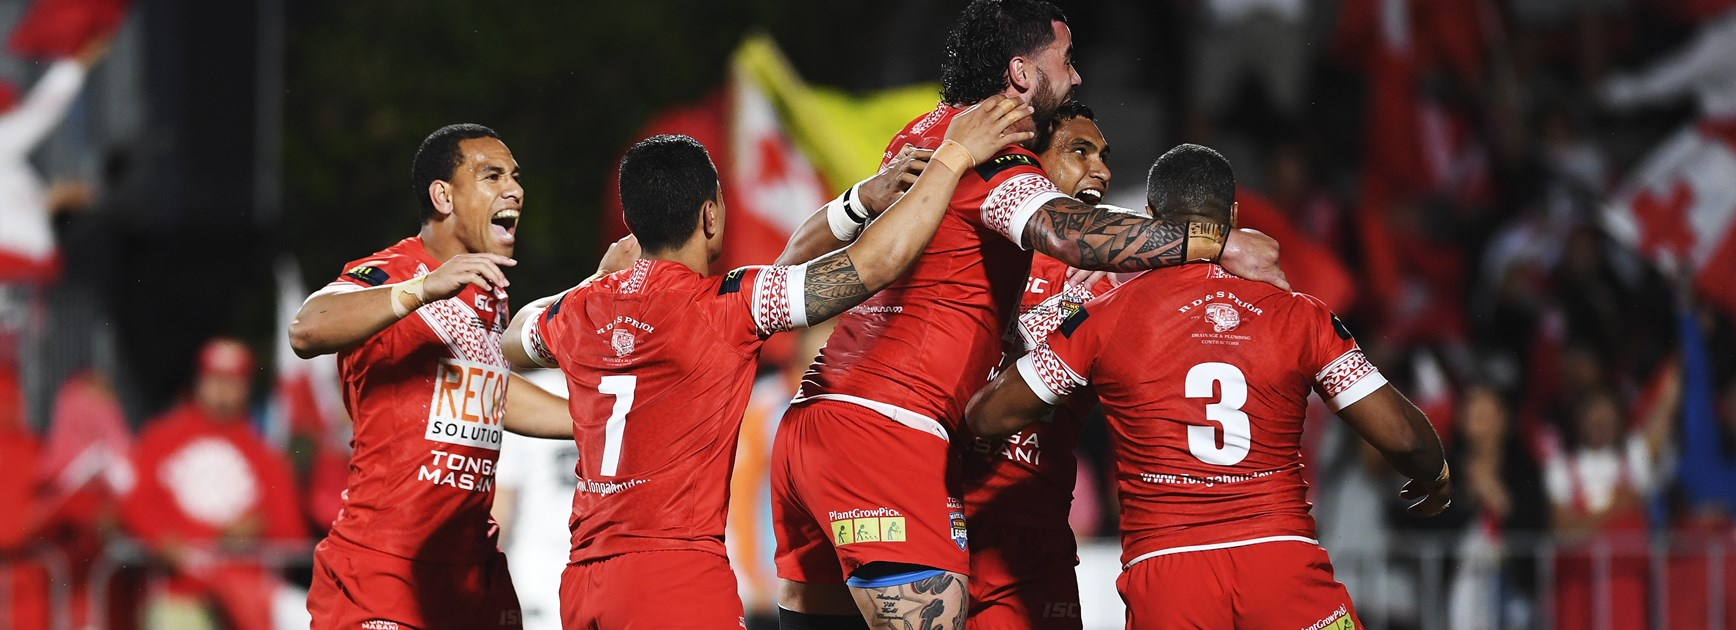 Pangai's dream to turn Tonga into force on world stage